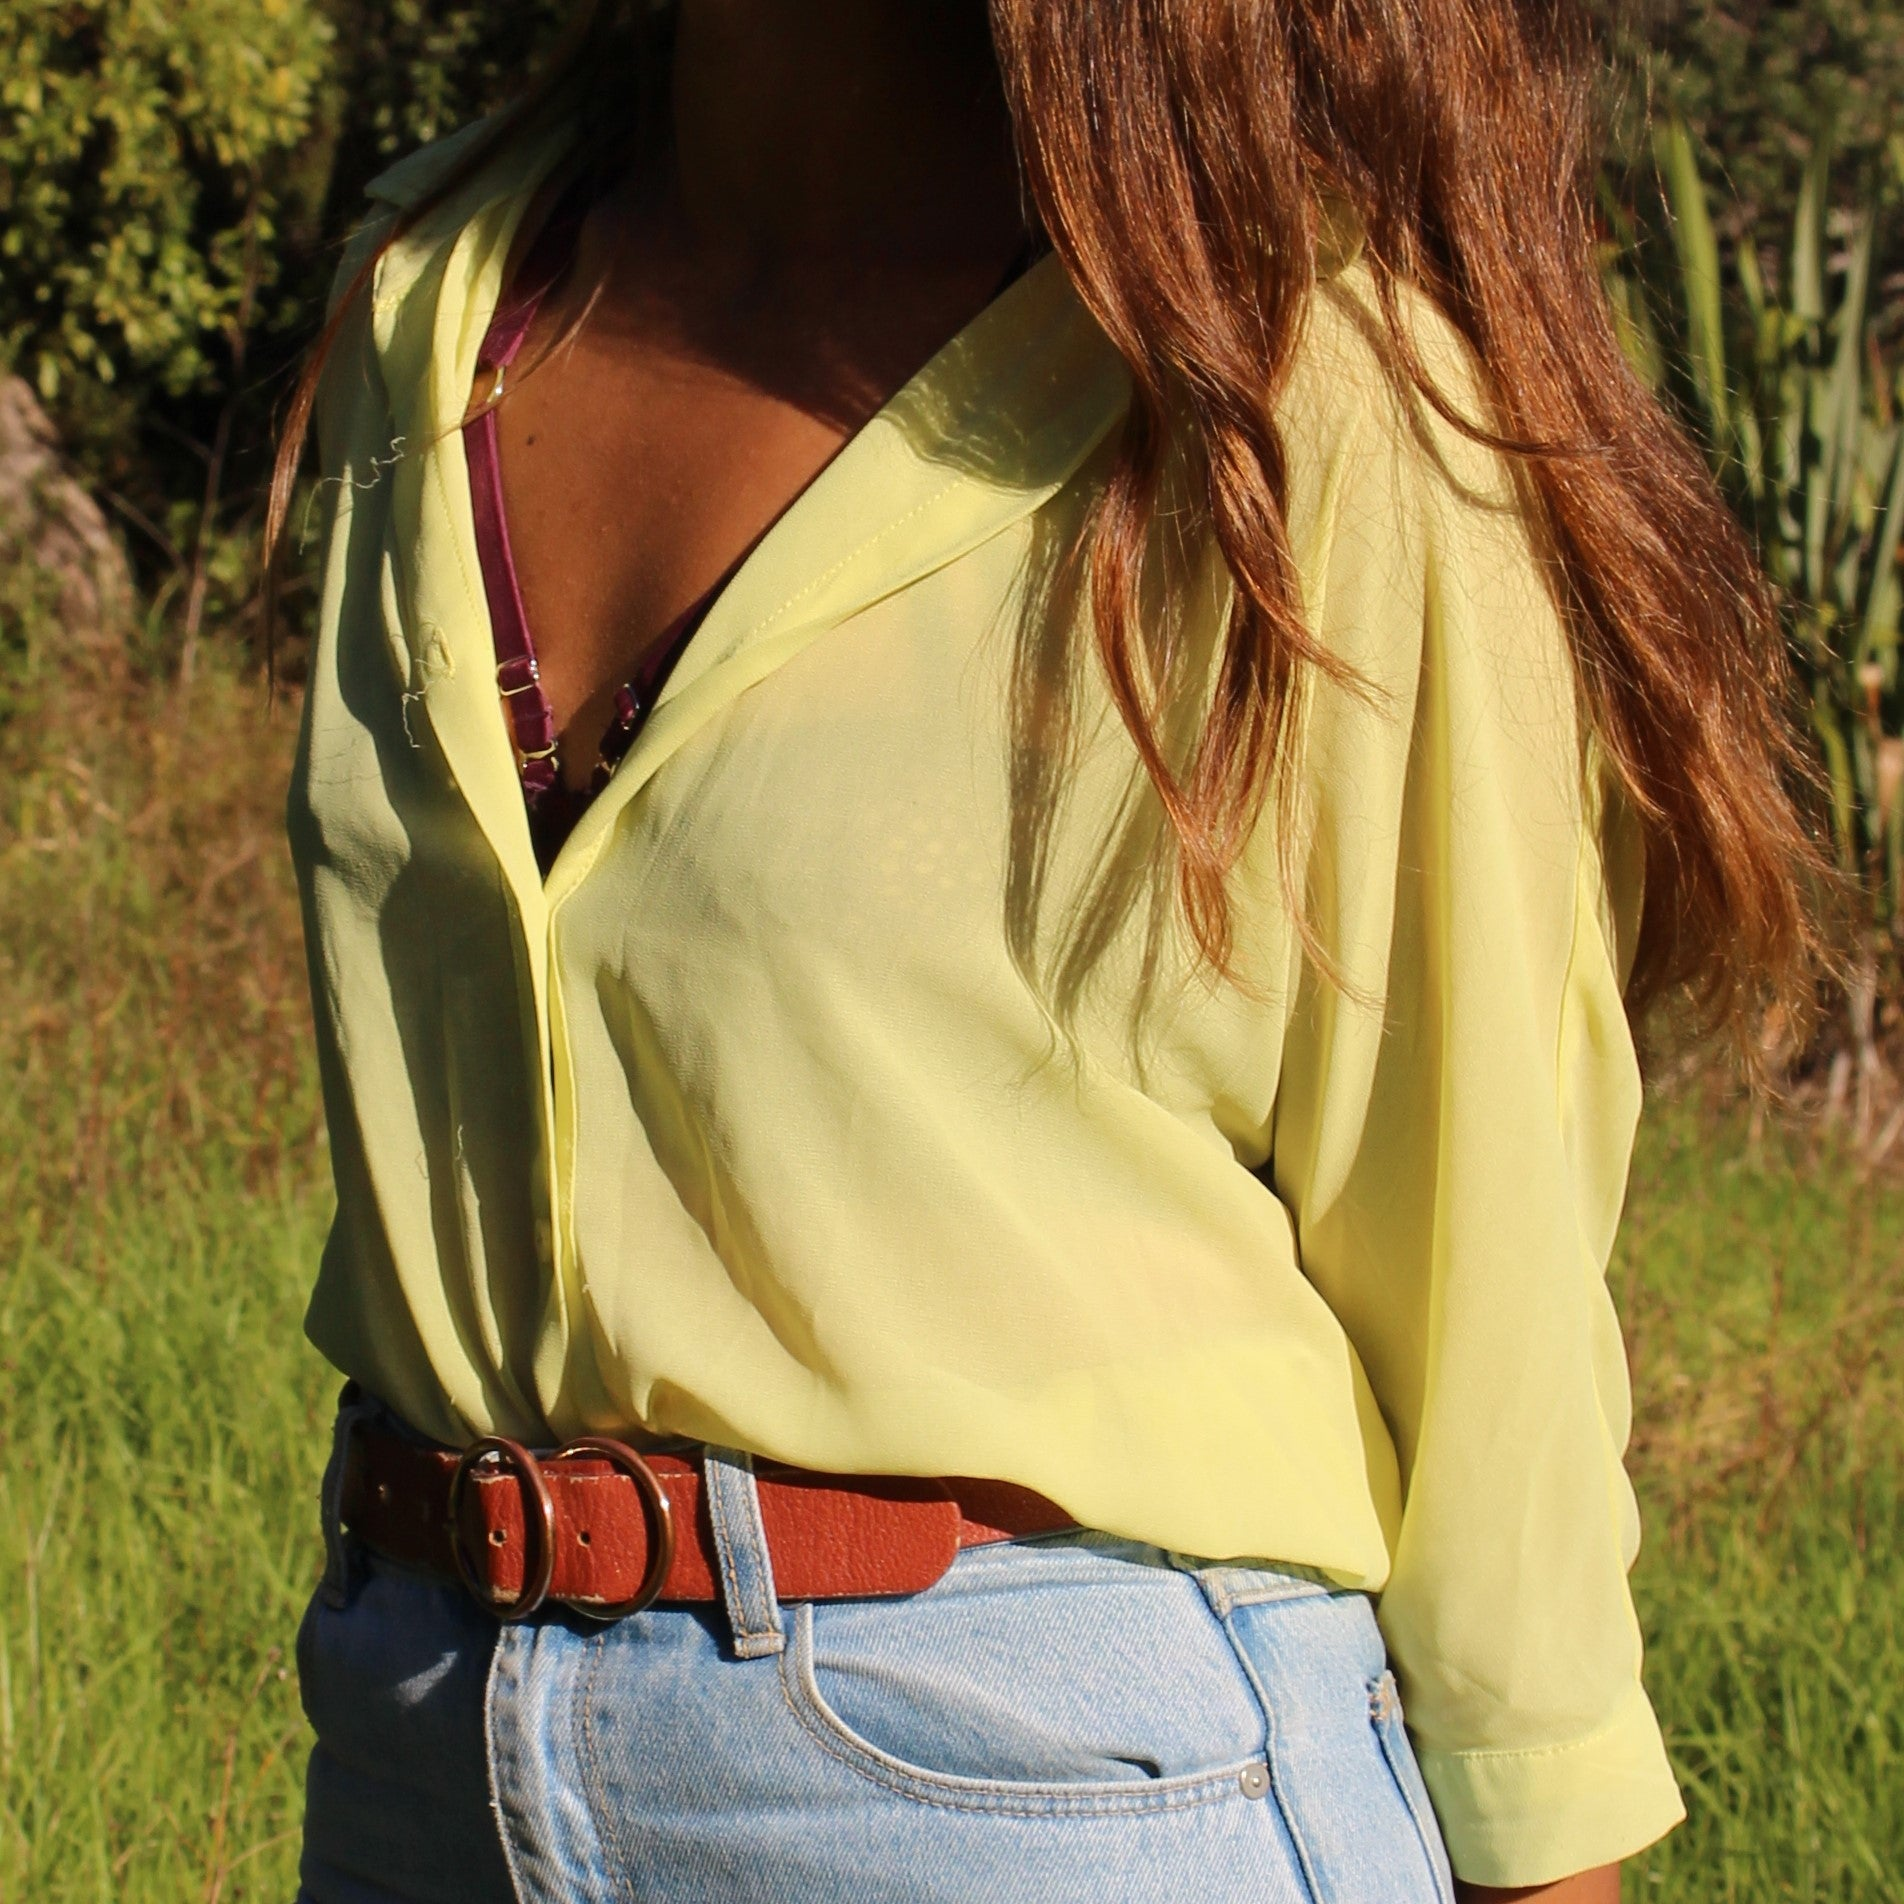 Lemon Squeeze Shirt - ZoMa Collective